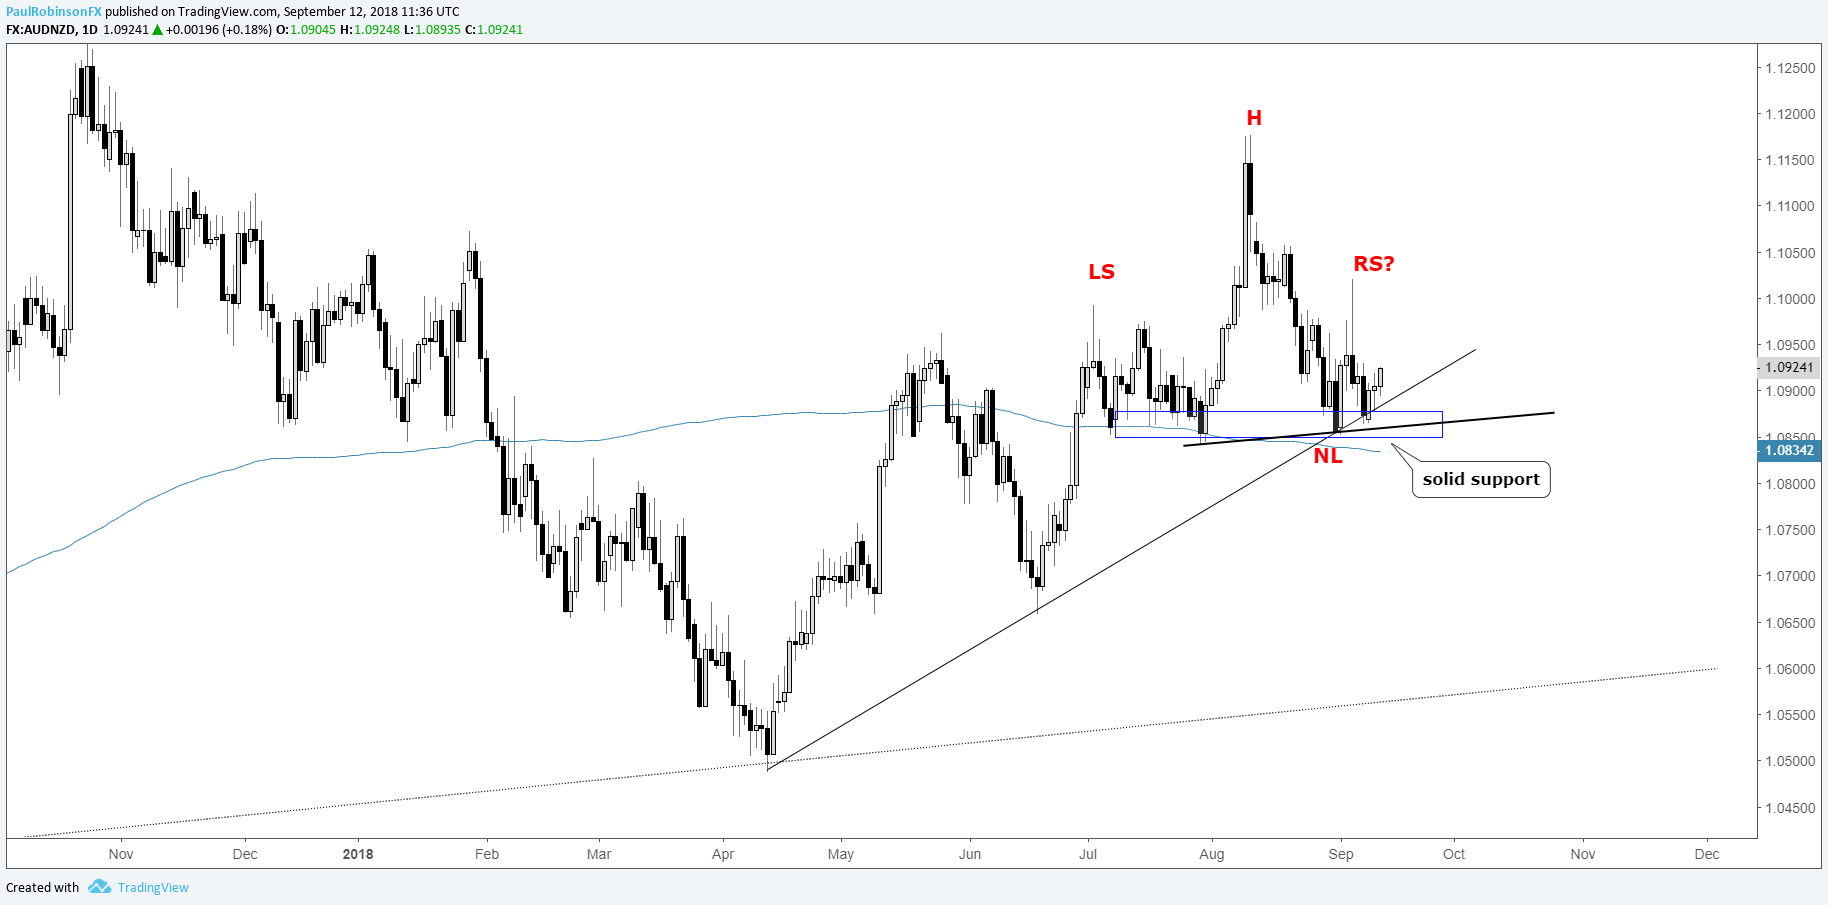 Trading Outlook For Usd Eur Nzd Crosses Gold Price More Opinvsscir Download The Spice File Aud Daily Chart Big Support First But A Break Validates Hs